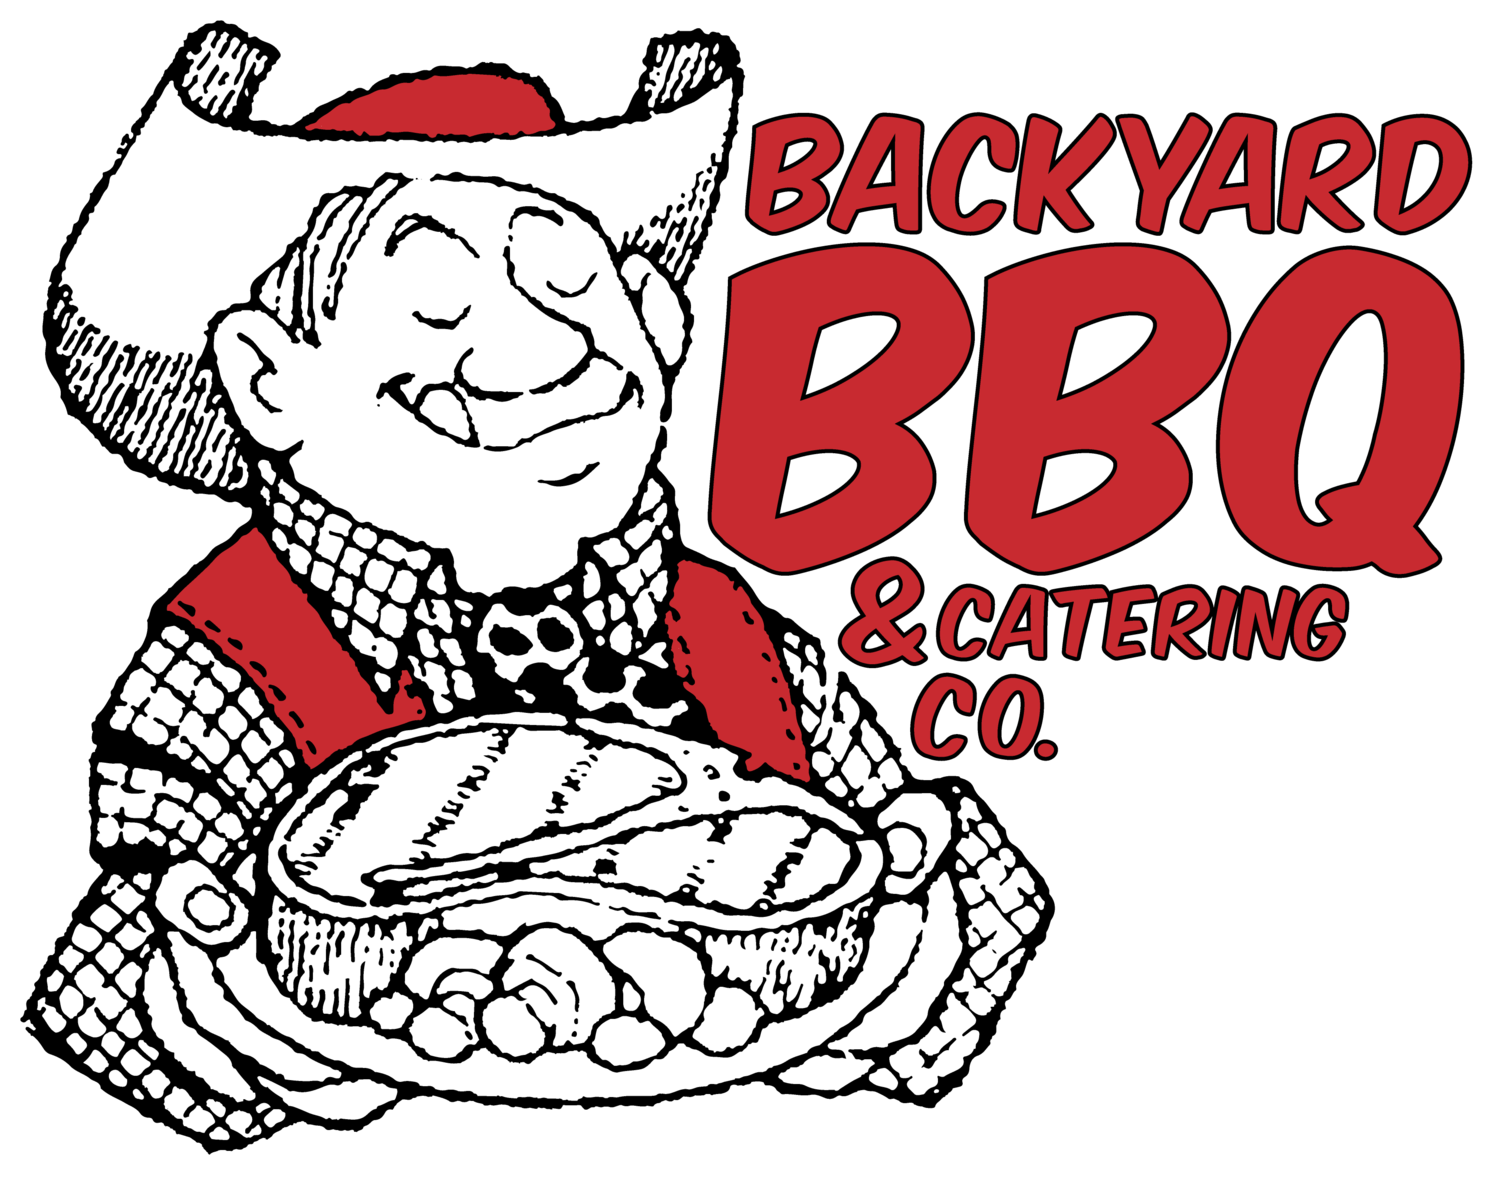 Backyard BBQ & Catering Co.